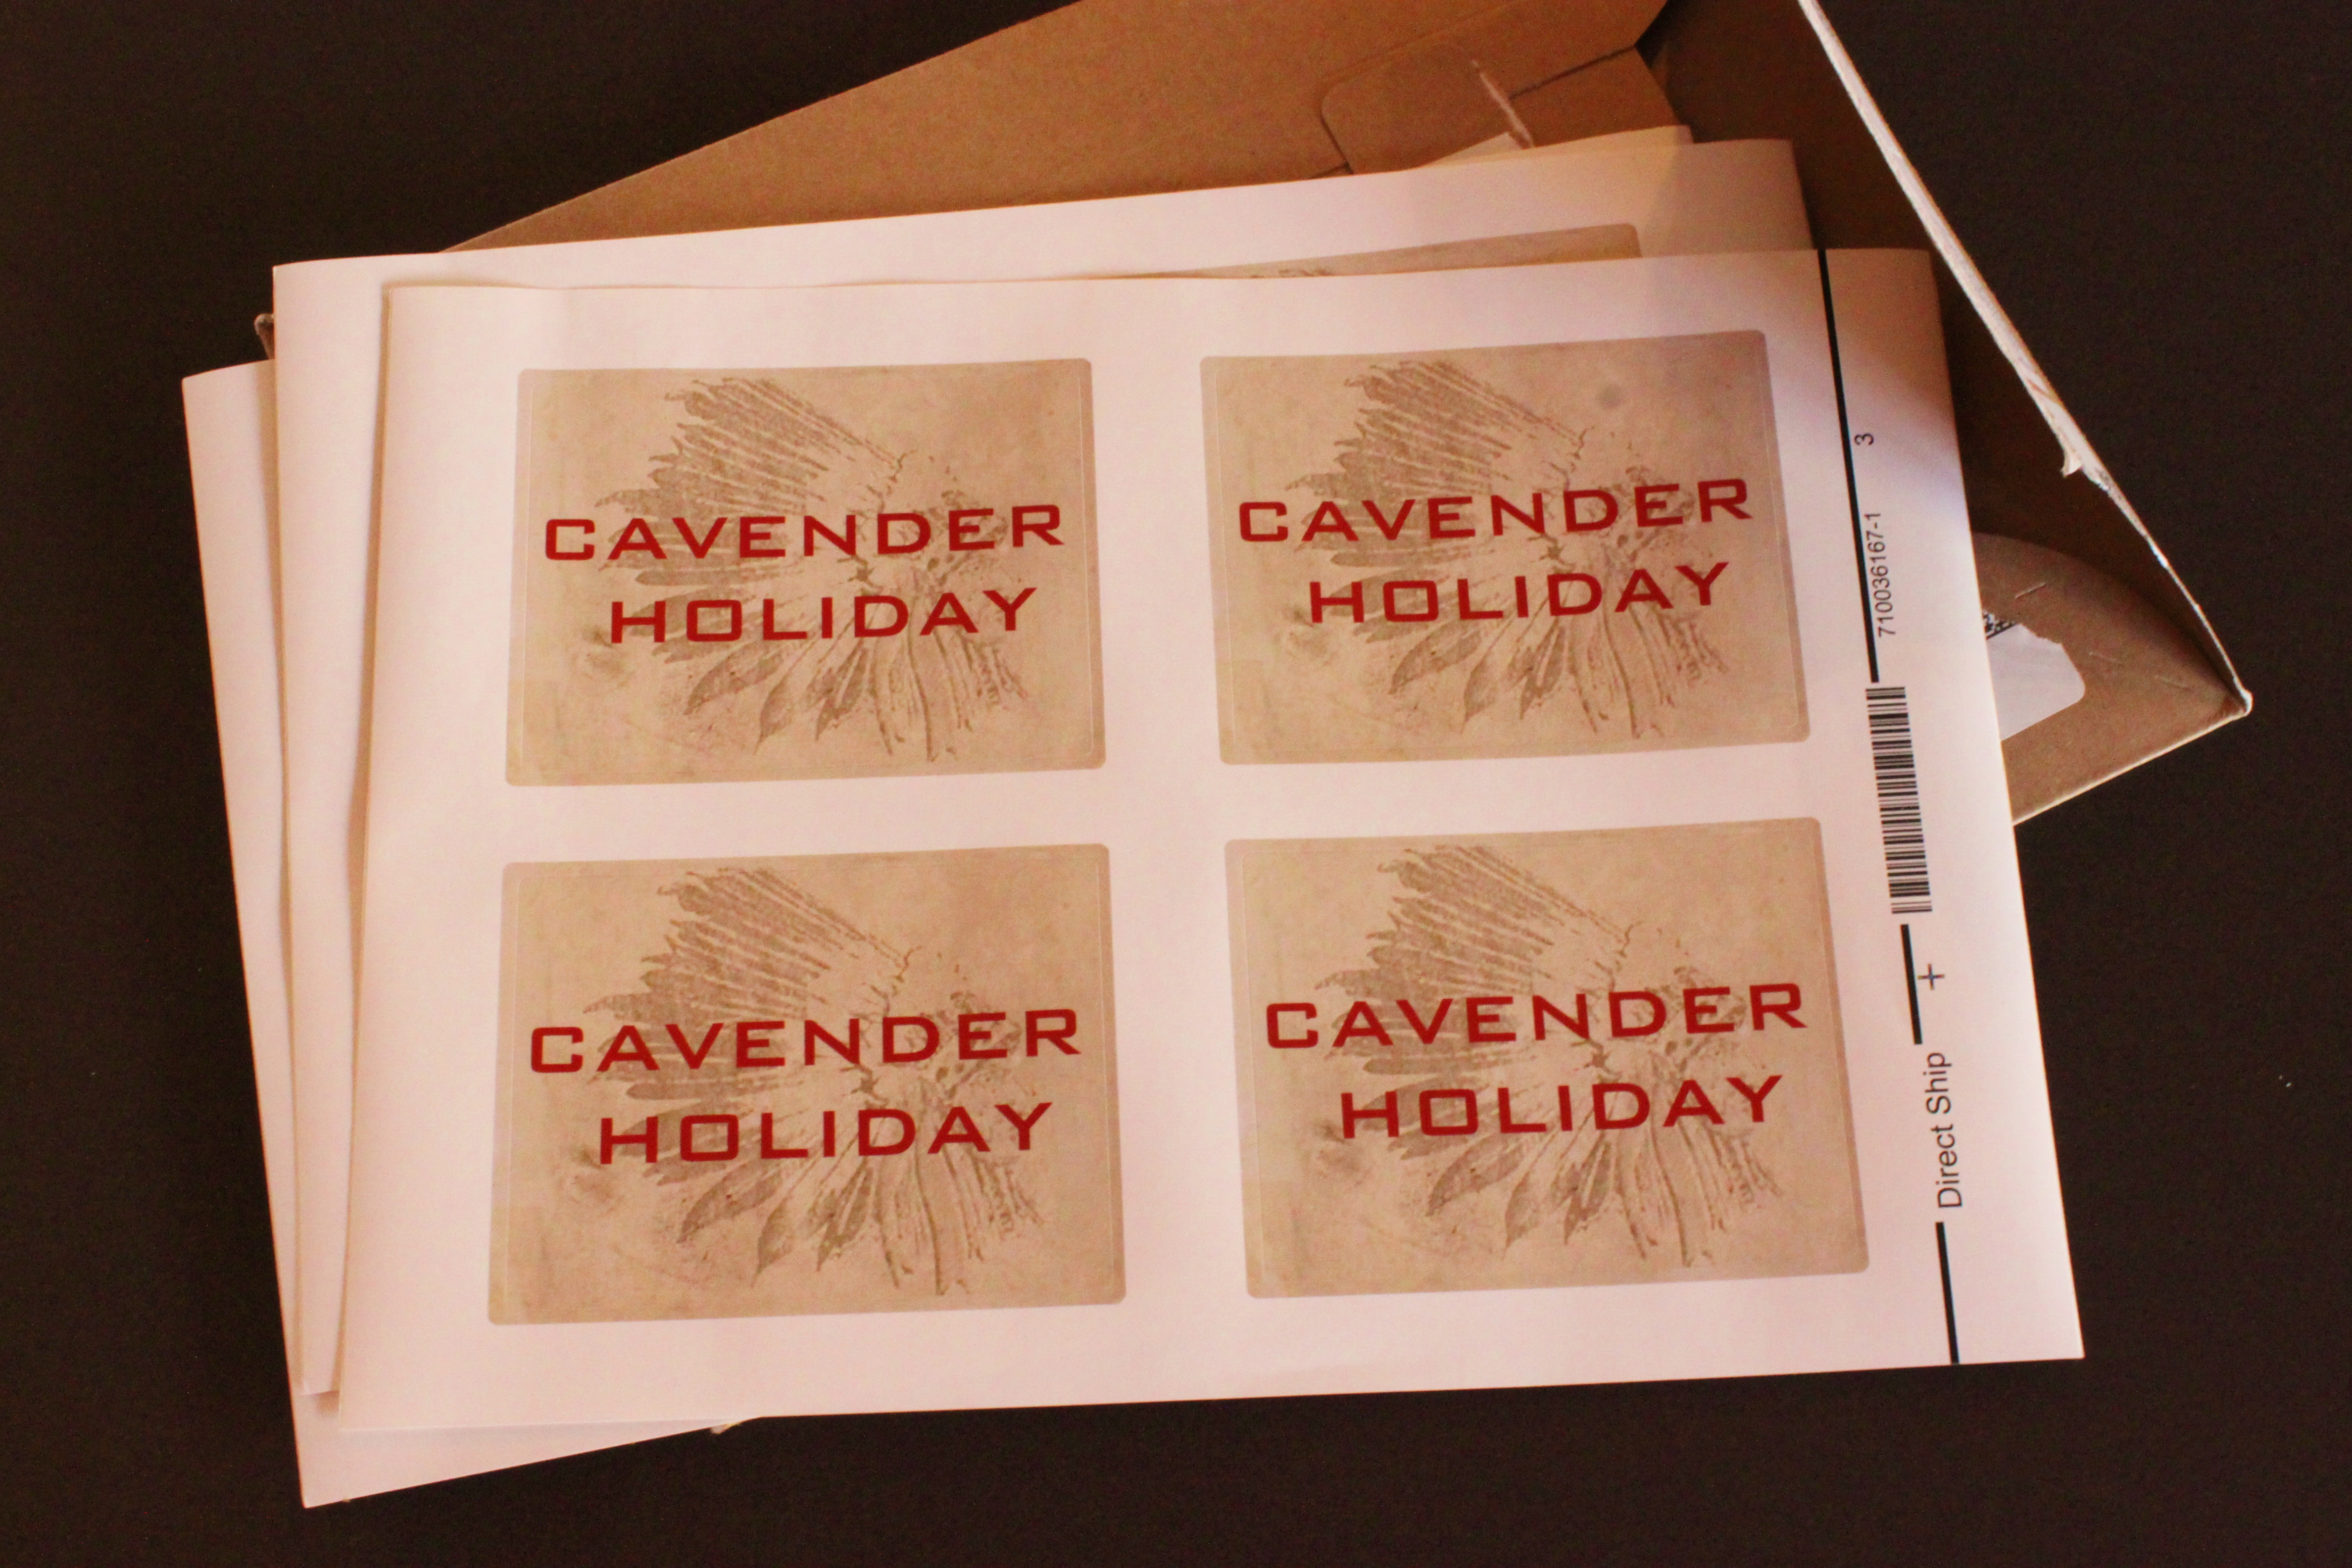 Cavender holiday candles the cavender diary